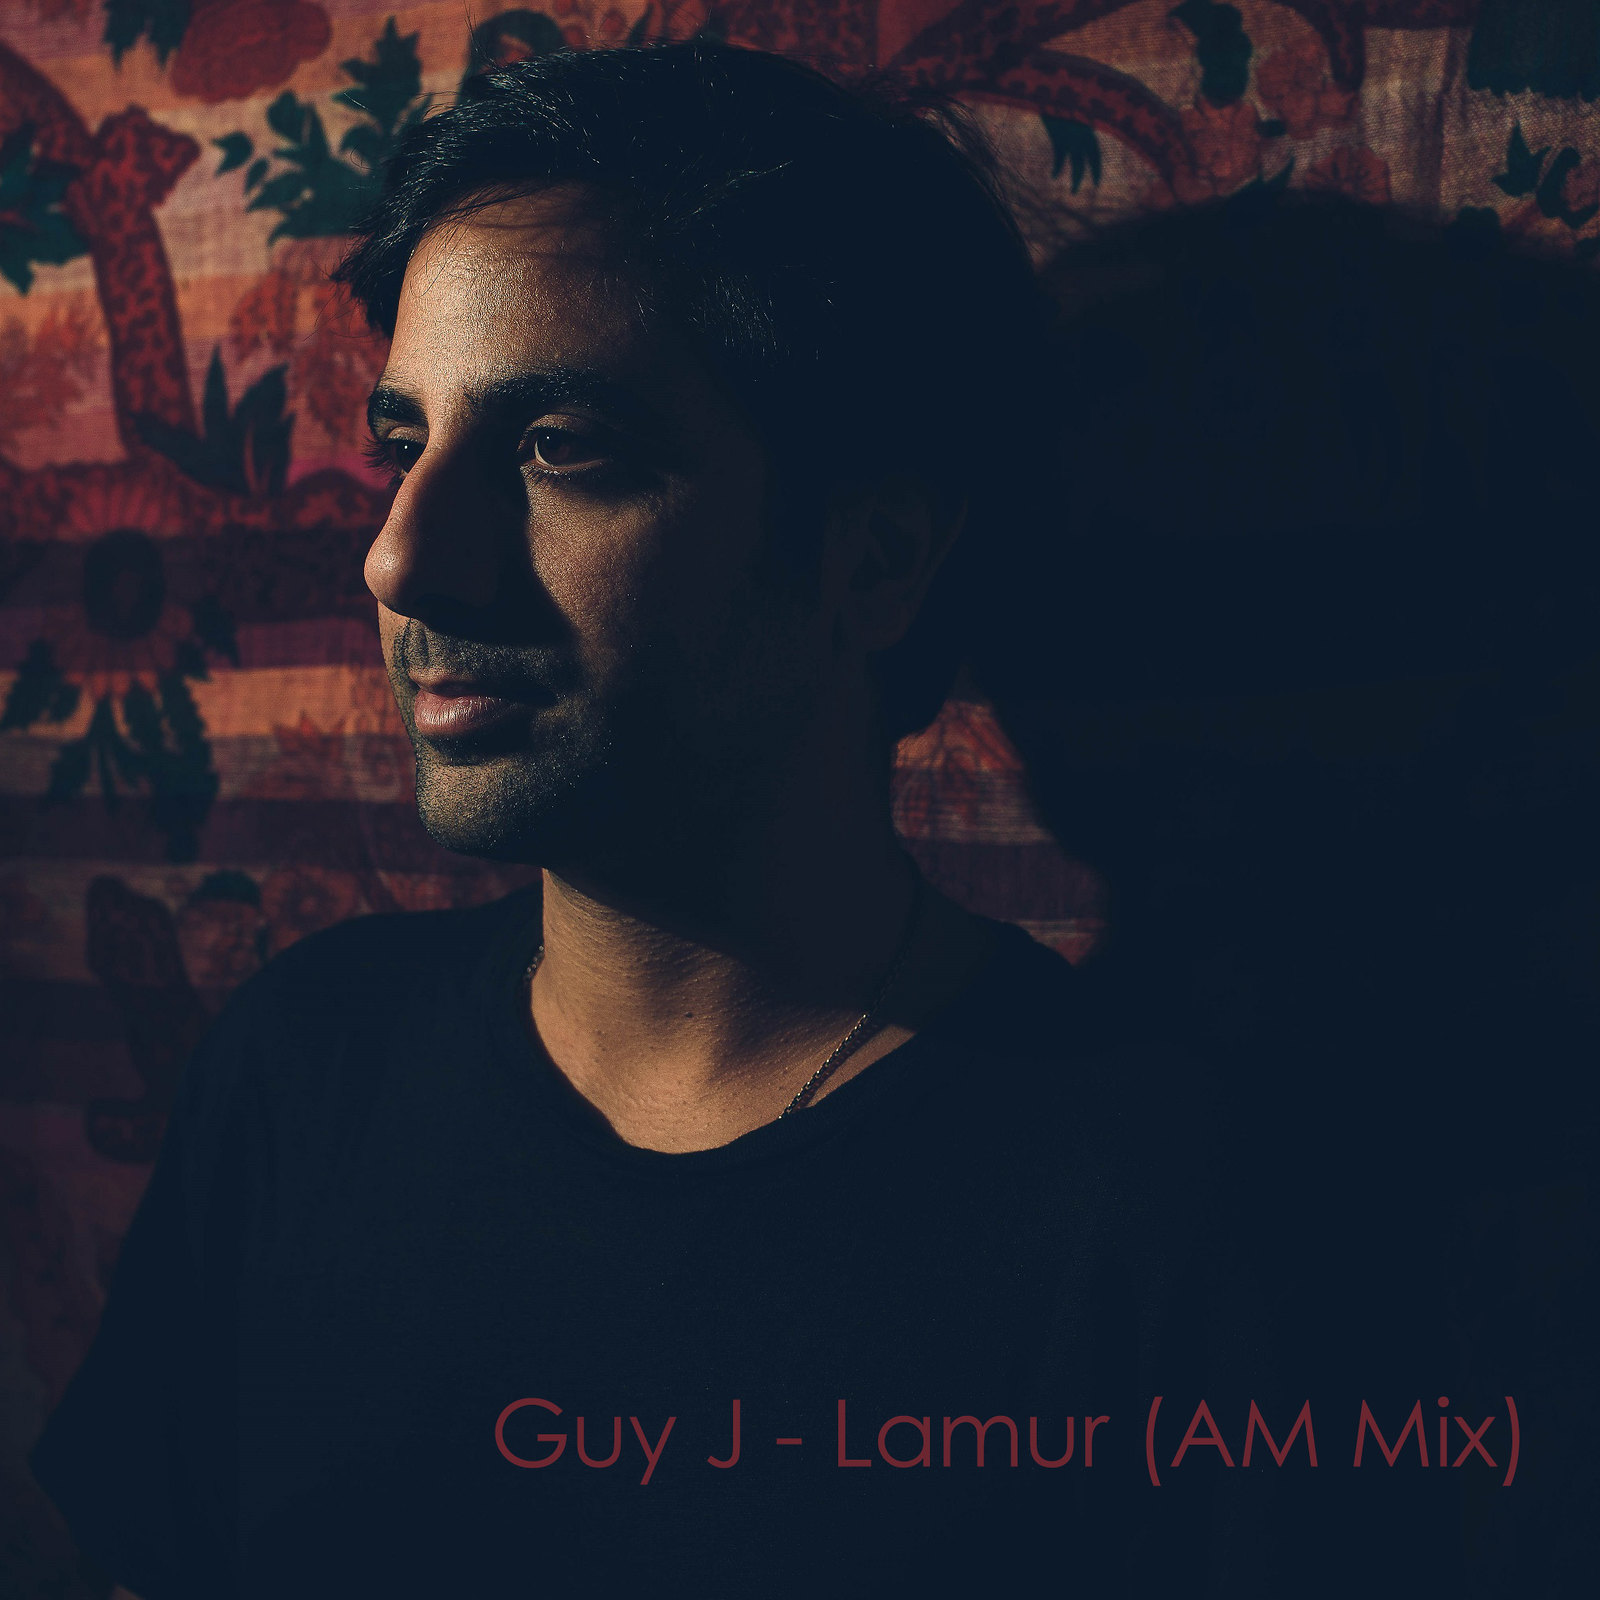 Guy J - Lamur (AM Mix) [Chillout]